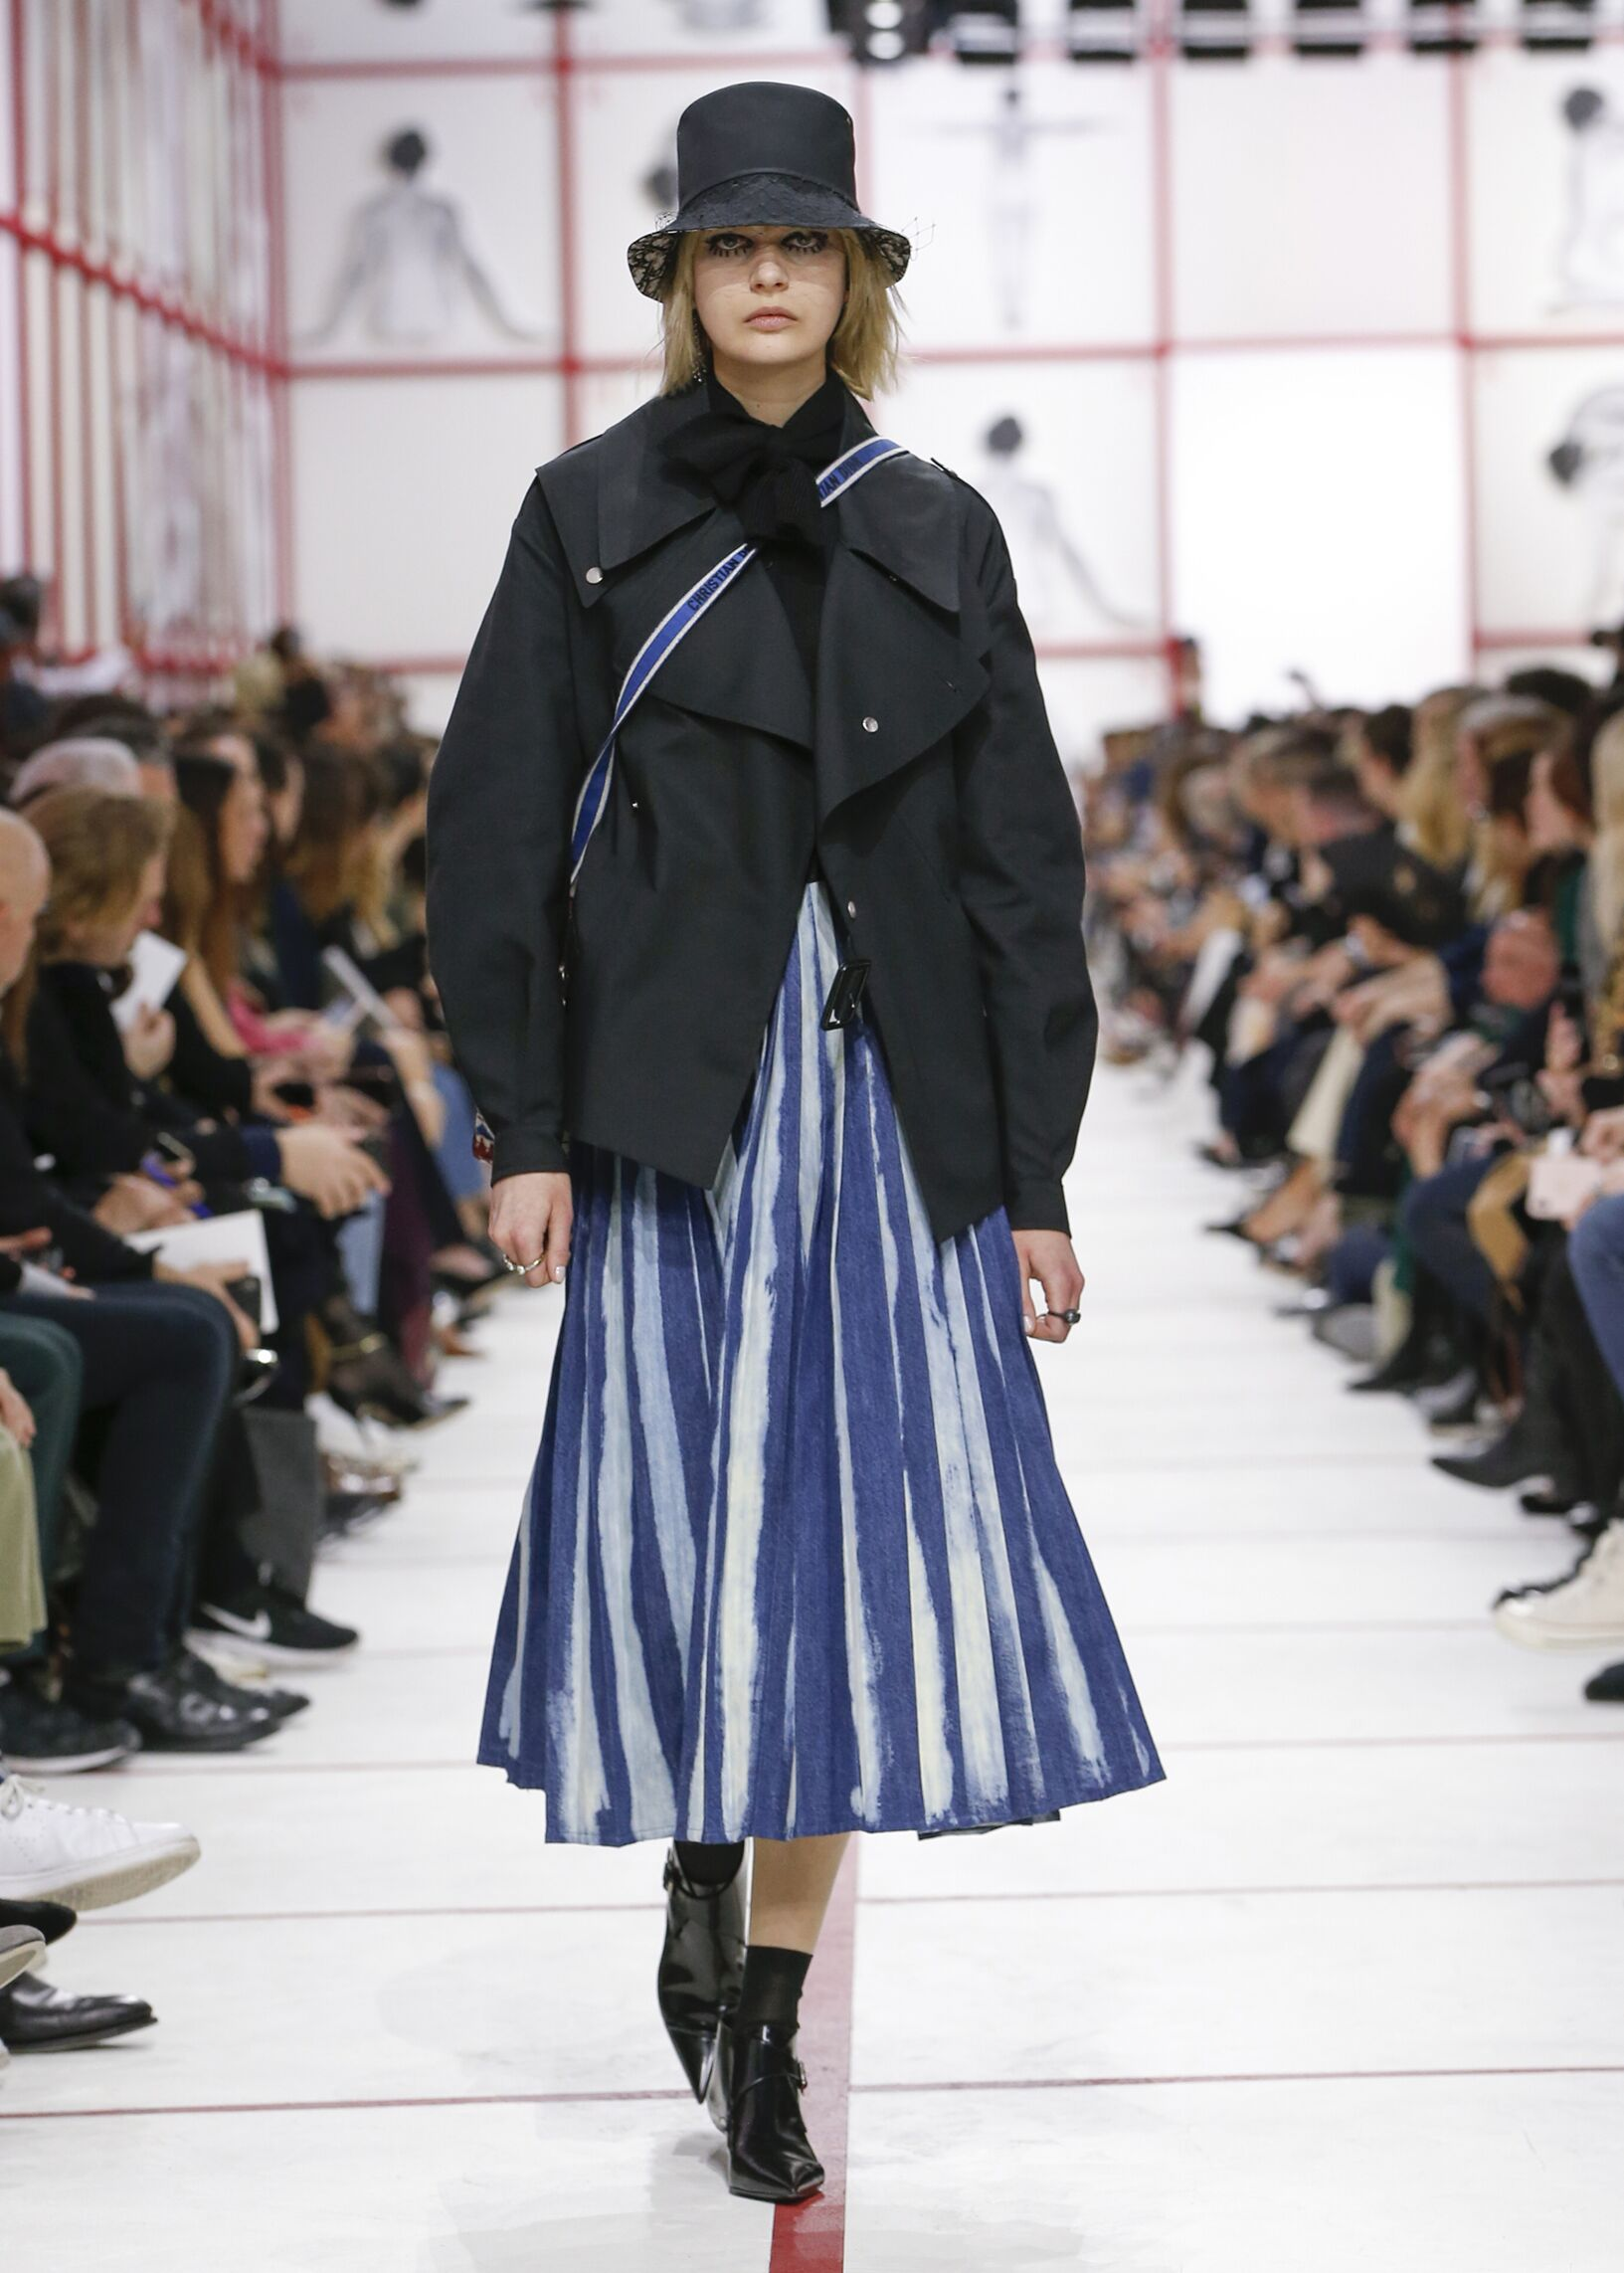 FW 2019 Dior Show Paris Fashion Week Womenswear